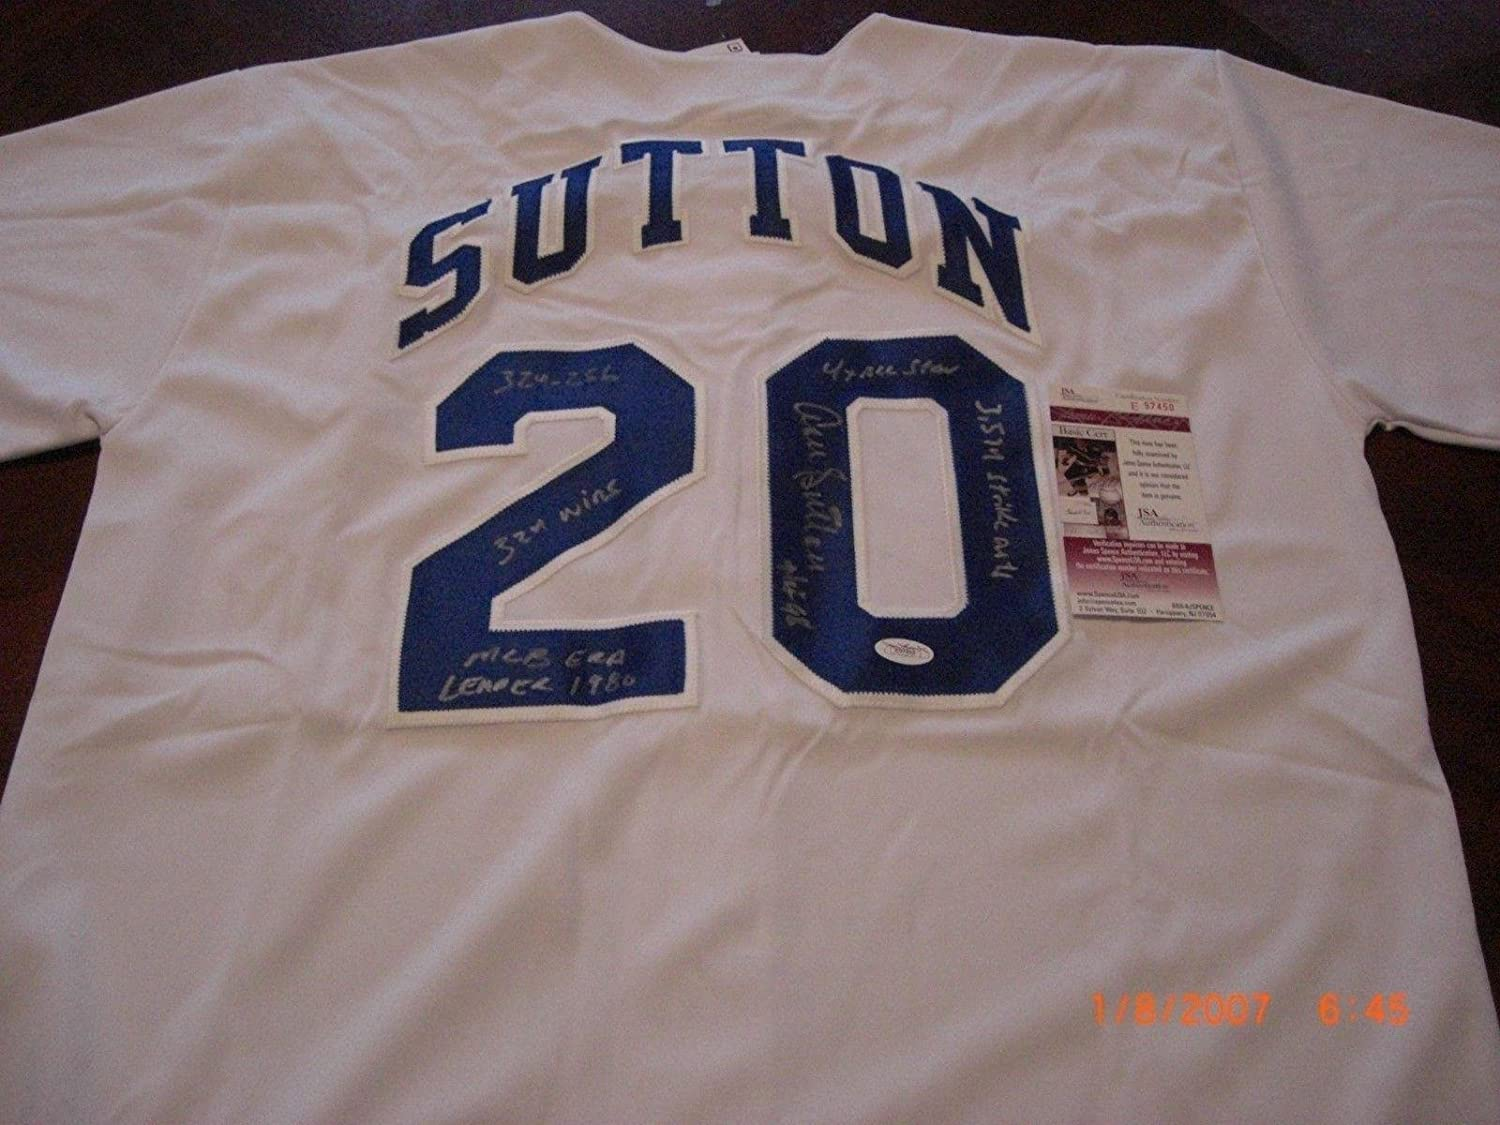 Don Sutton Autographed Jersey - 3574 Strikeouts 4x As hof 98 324 256 coa - JSA Certified - Autographed MLB Jerseys